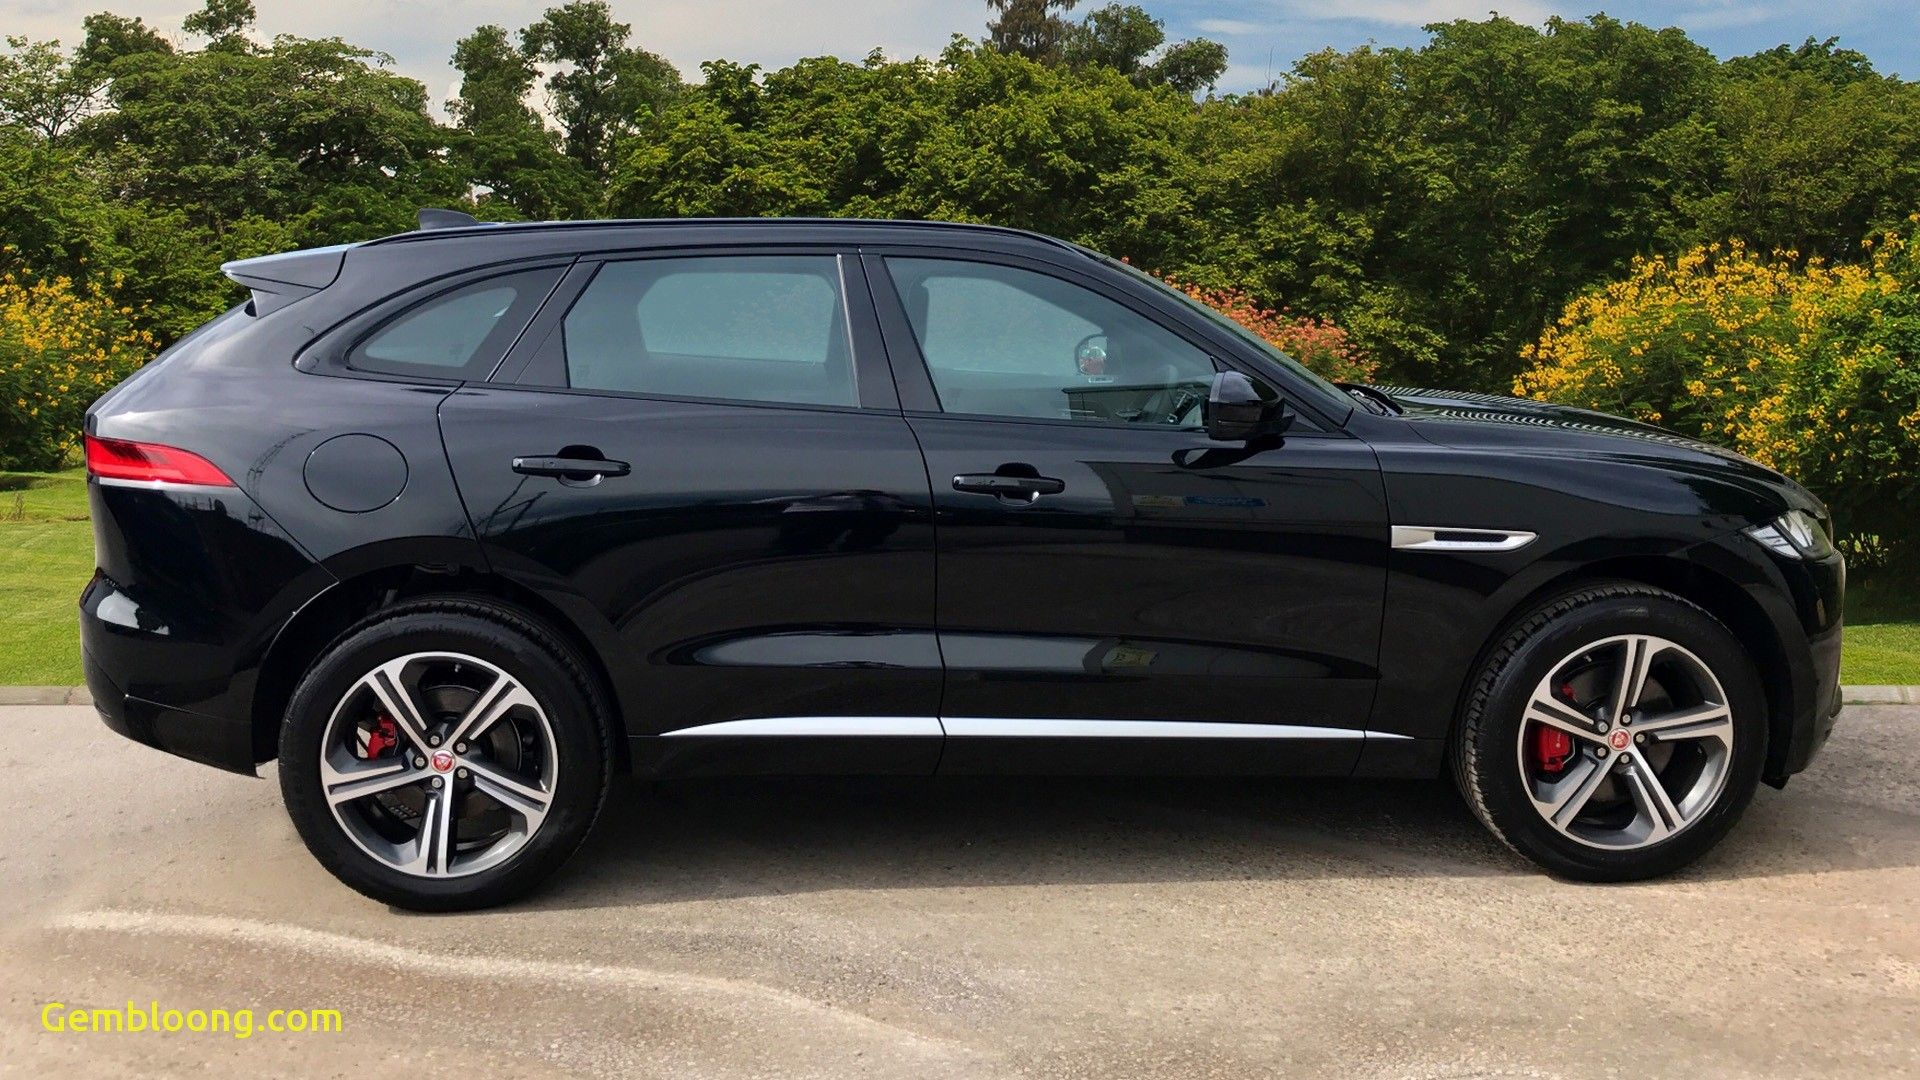 cheap used cars in good condition for sale beautiful top cheapest suv to used jaguar f pace 3 0d v6 s 5dr auto awd